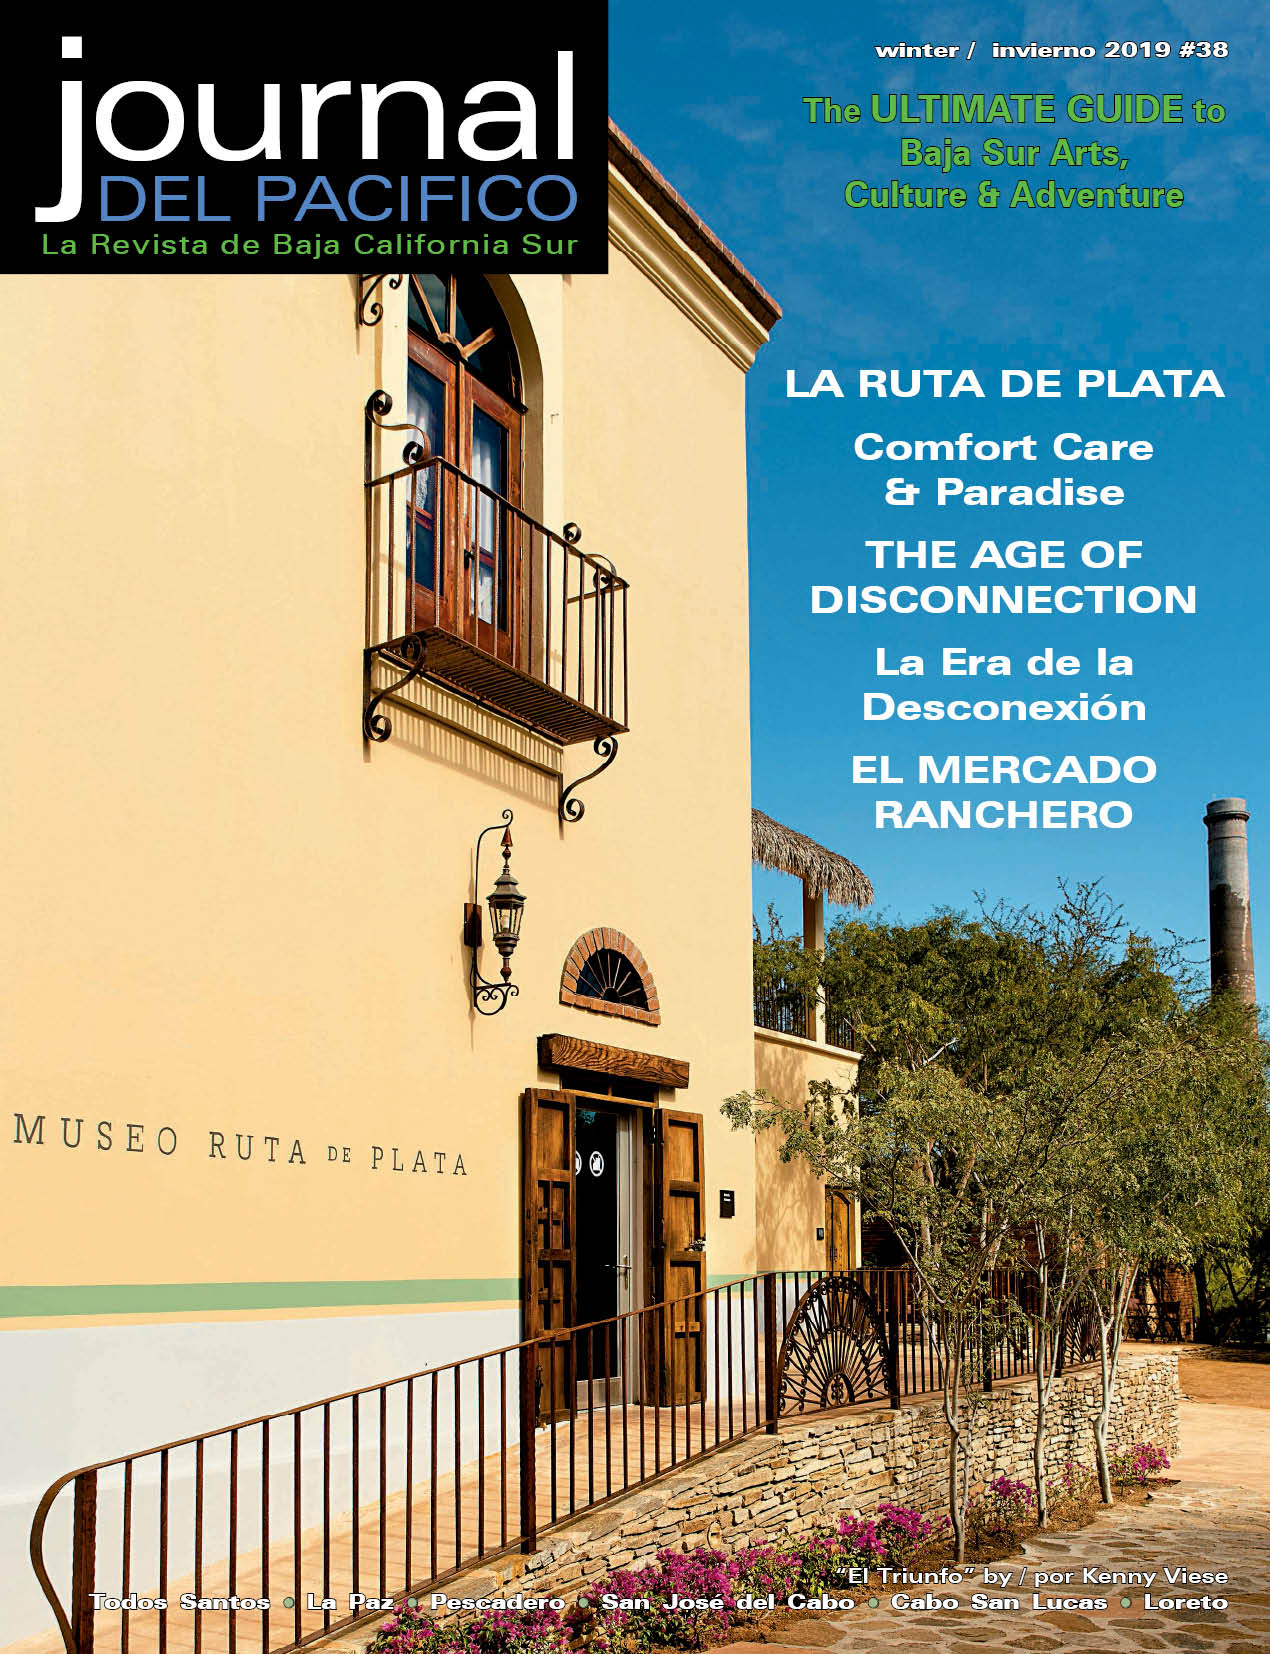 Winter/Invierno 2019 Issue of Journal del Pacifico